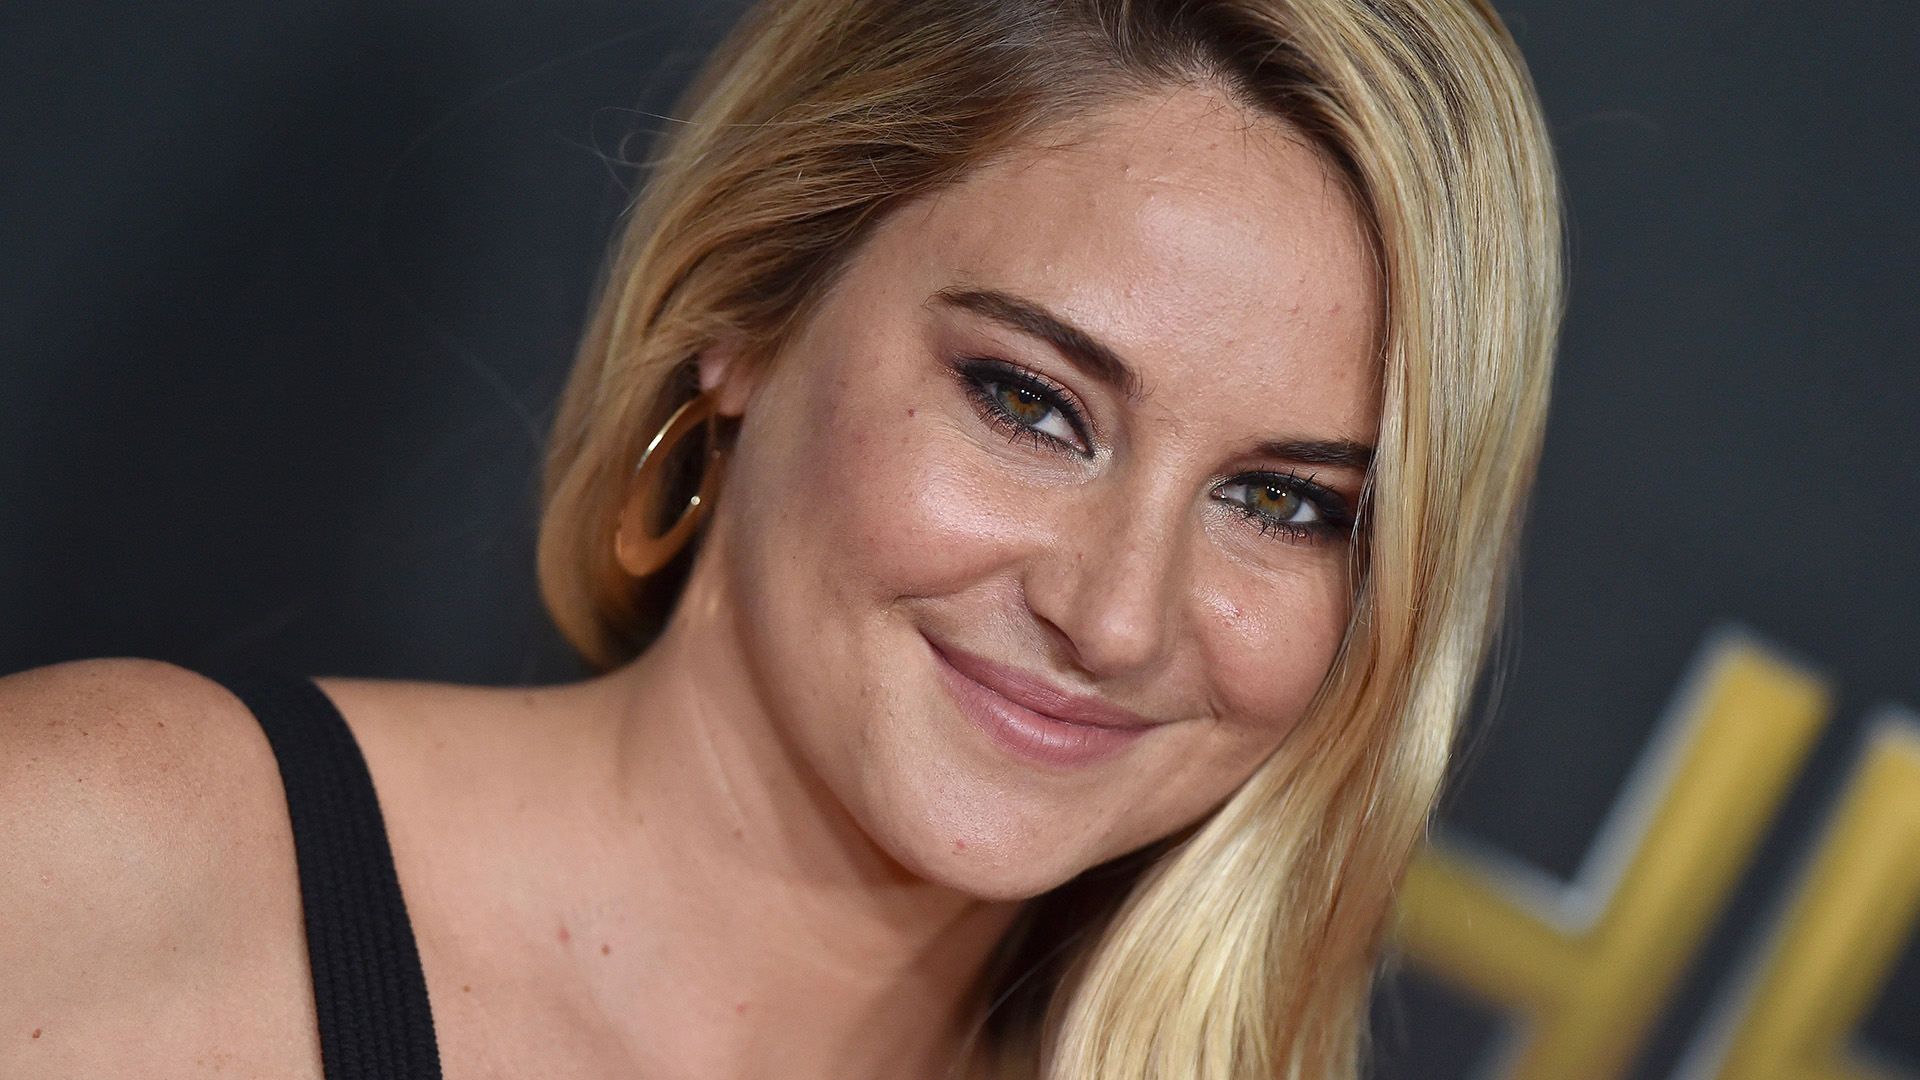 Shailene Woodley Dyed Her Hair Jet-Black and Added Chic, Choppy Bangs